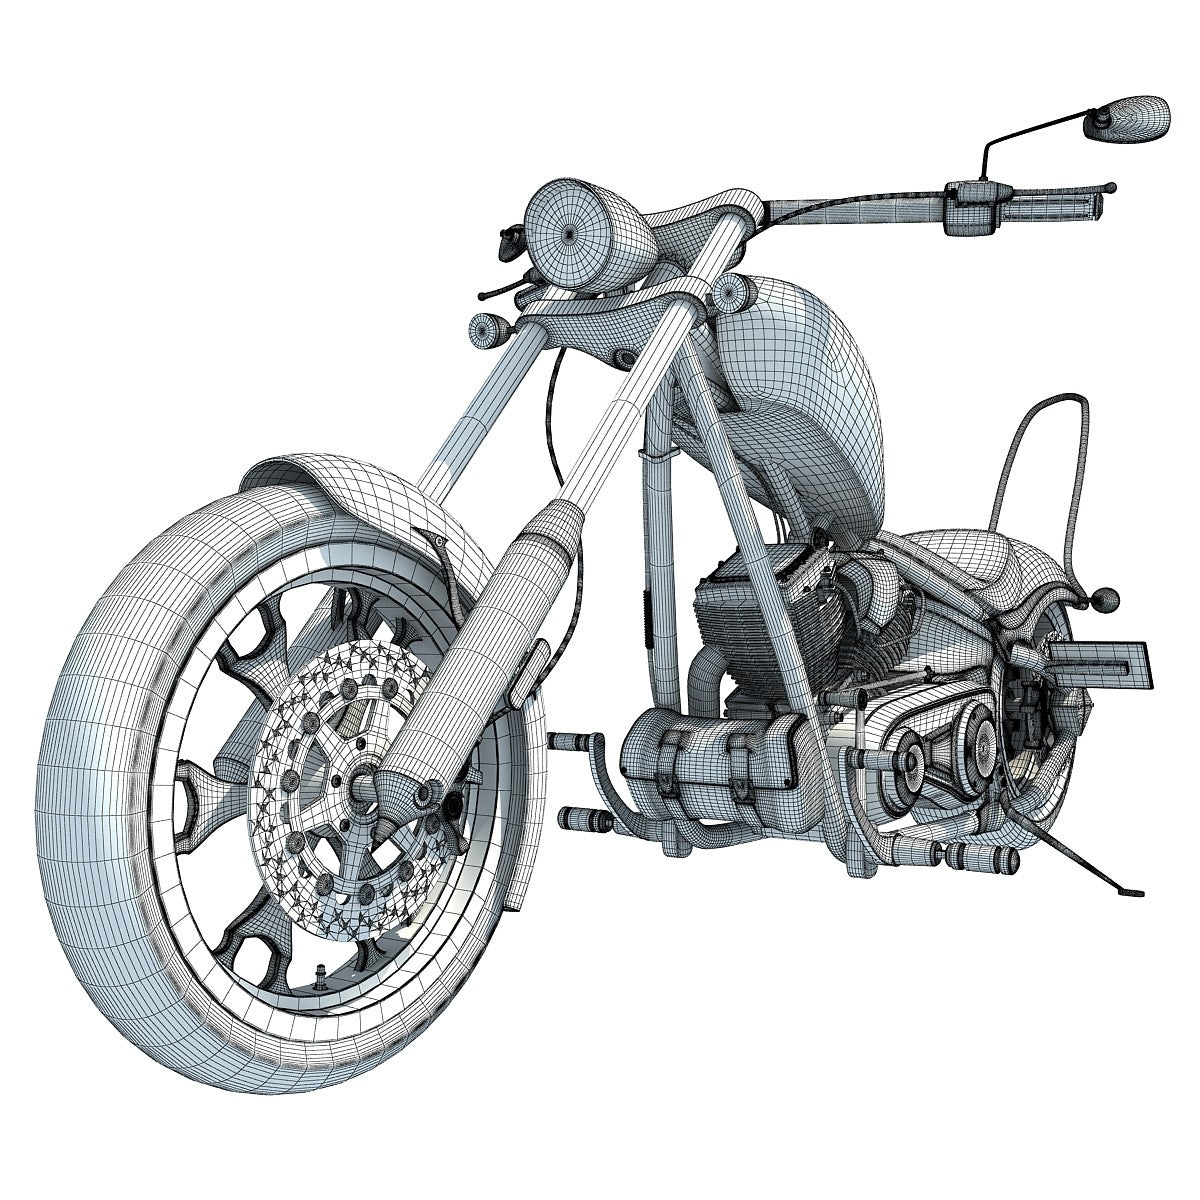 Big Dog Motorcycle 3D Model